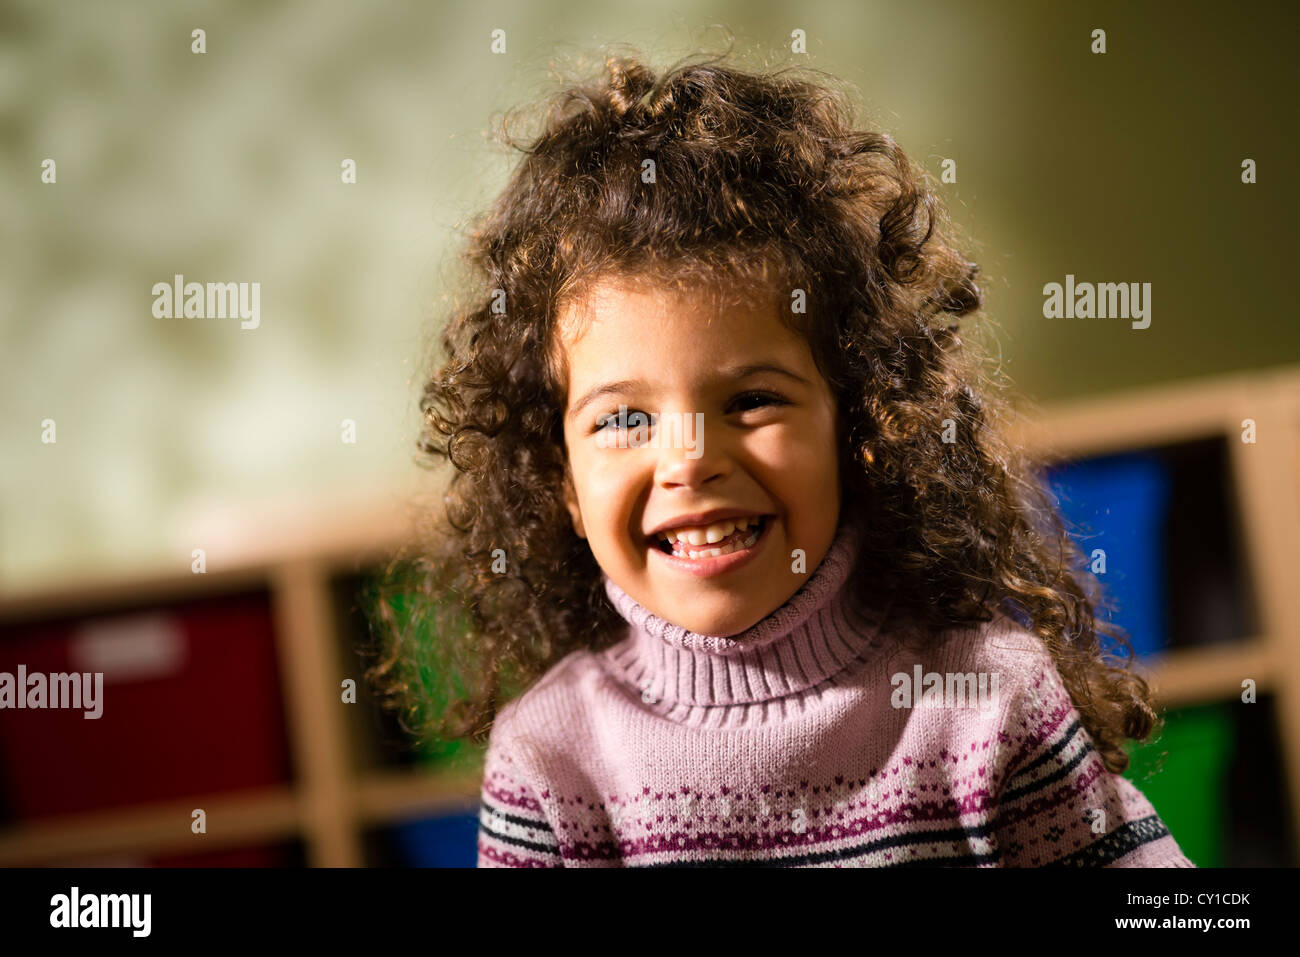 Portraits of children, happy 3 years old female with curly hair smiling and looking at camera in kindergarten - Stock Image